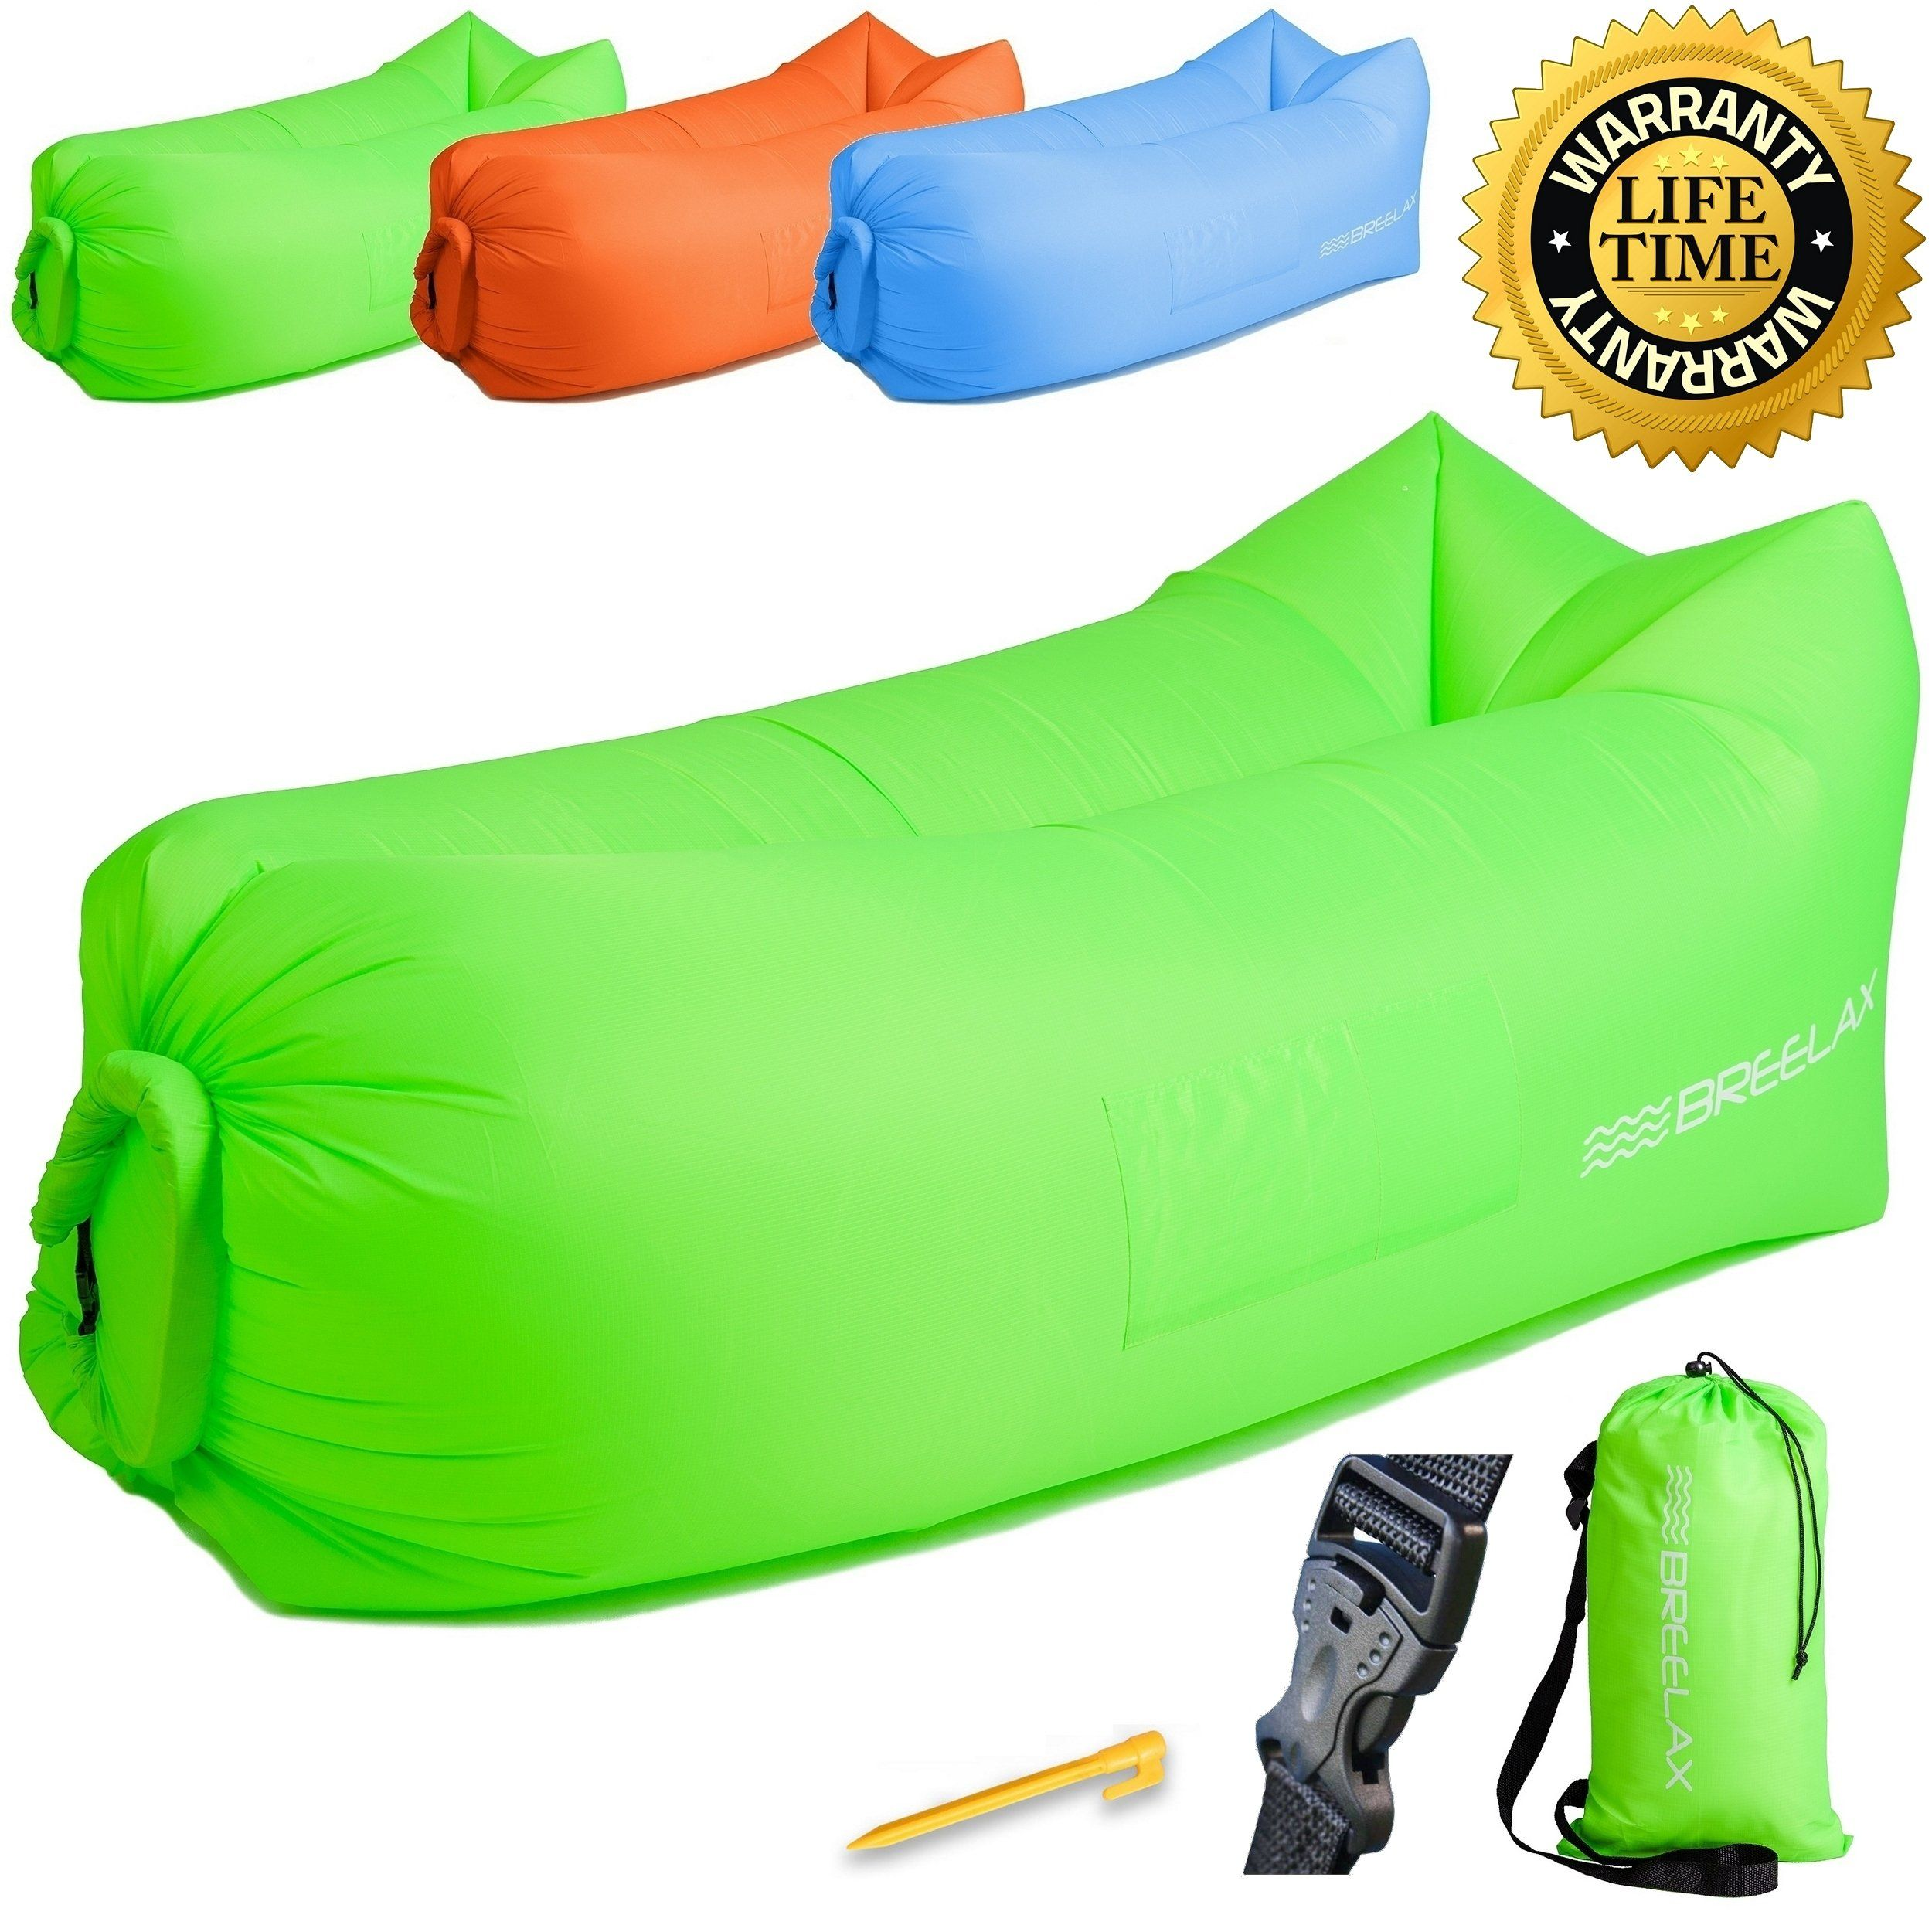 Cecle Outdoor Partable Inflatable Lounger Air Hangout Bag Lazy Inflatable Sofa Banana Sleeping Bag T Inflatable Sofa Inflatable Sofa Bed Inflatable Lounger